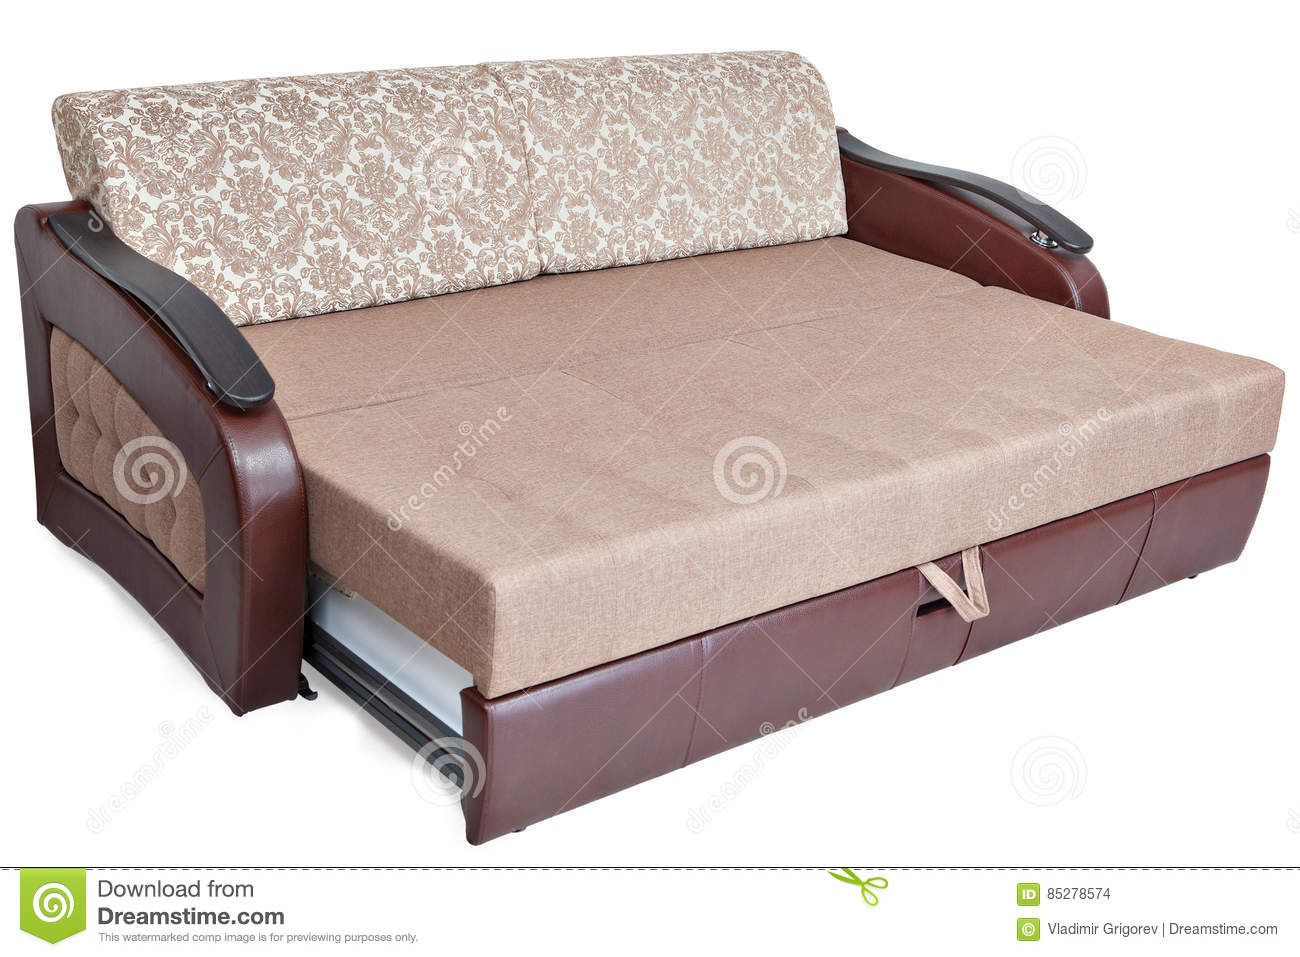 Full Size Pull Out Sofa Sleeper Light Brown Fabric And Warehouse Stock Photo Image Of Convertible Daybed 85278574